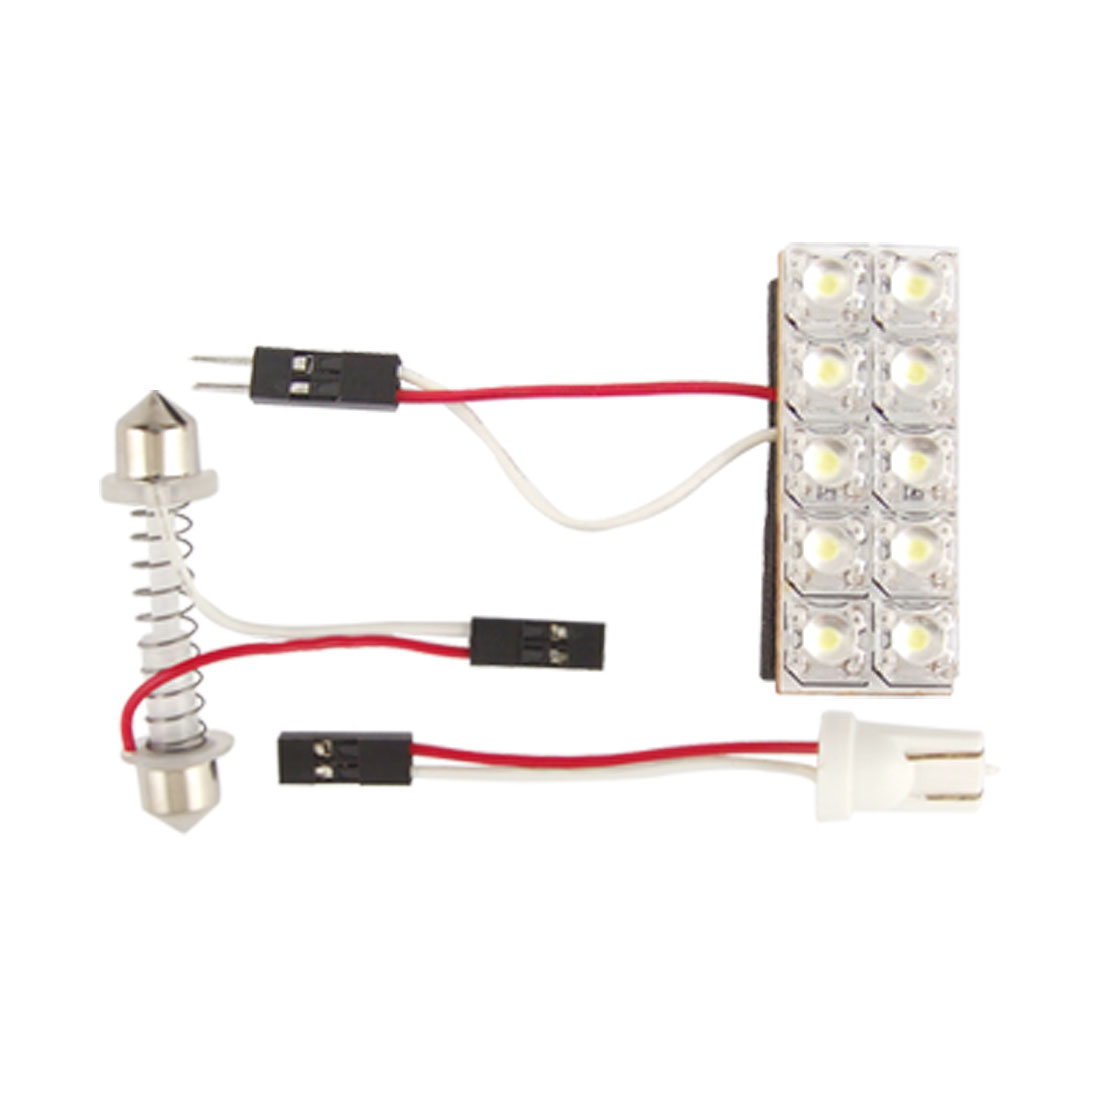 Car White Dome Map Interior 10 SMD LED Light Panel T10 Festoon Adapter